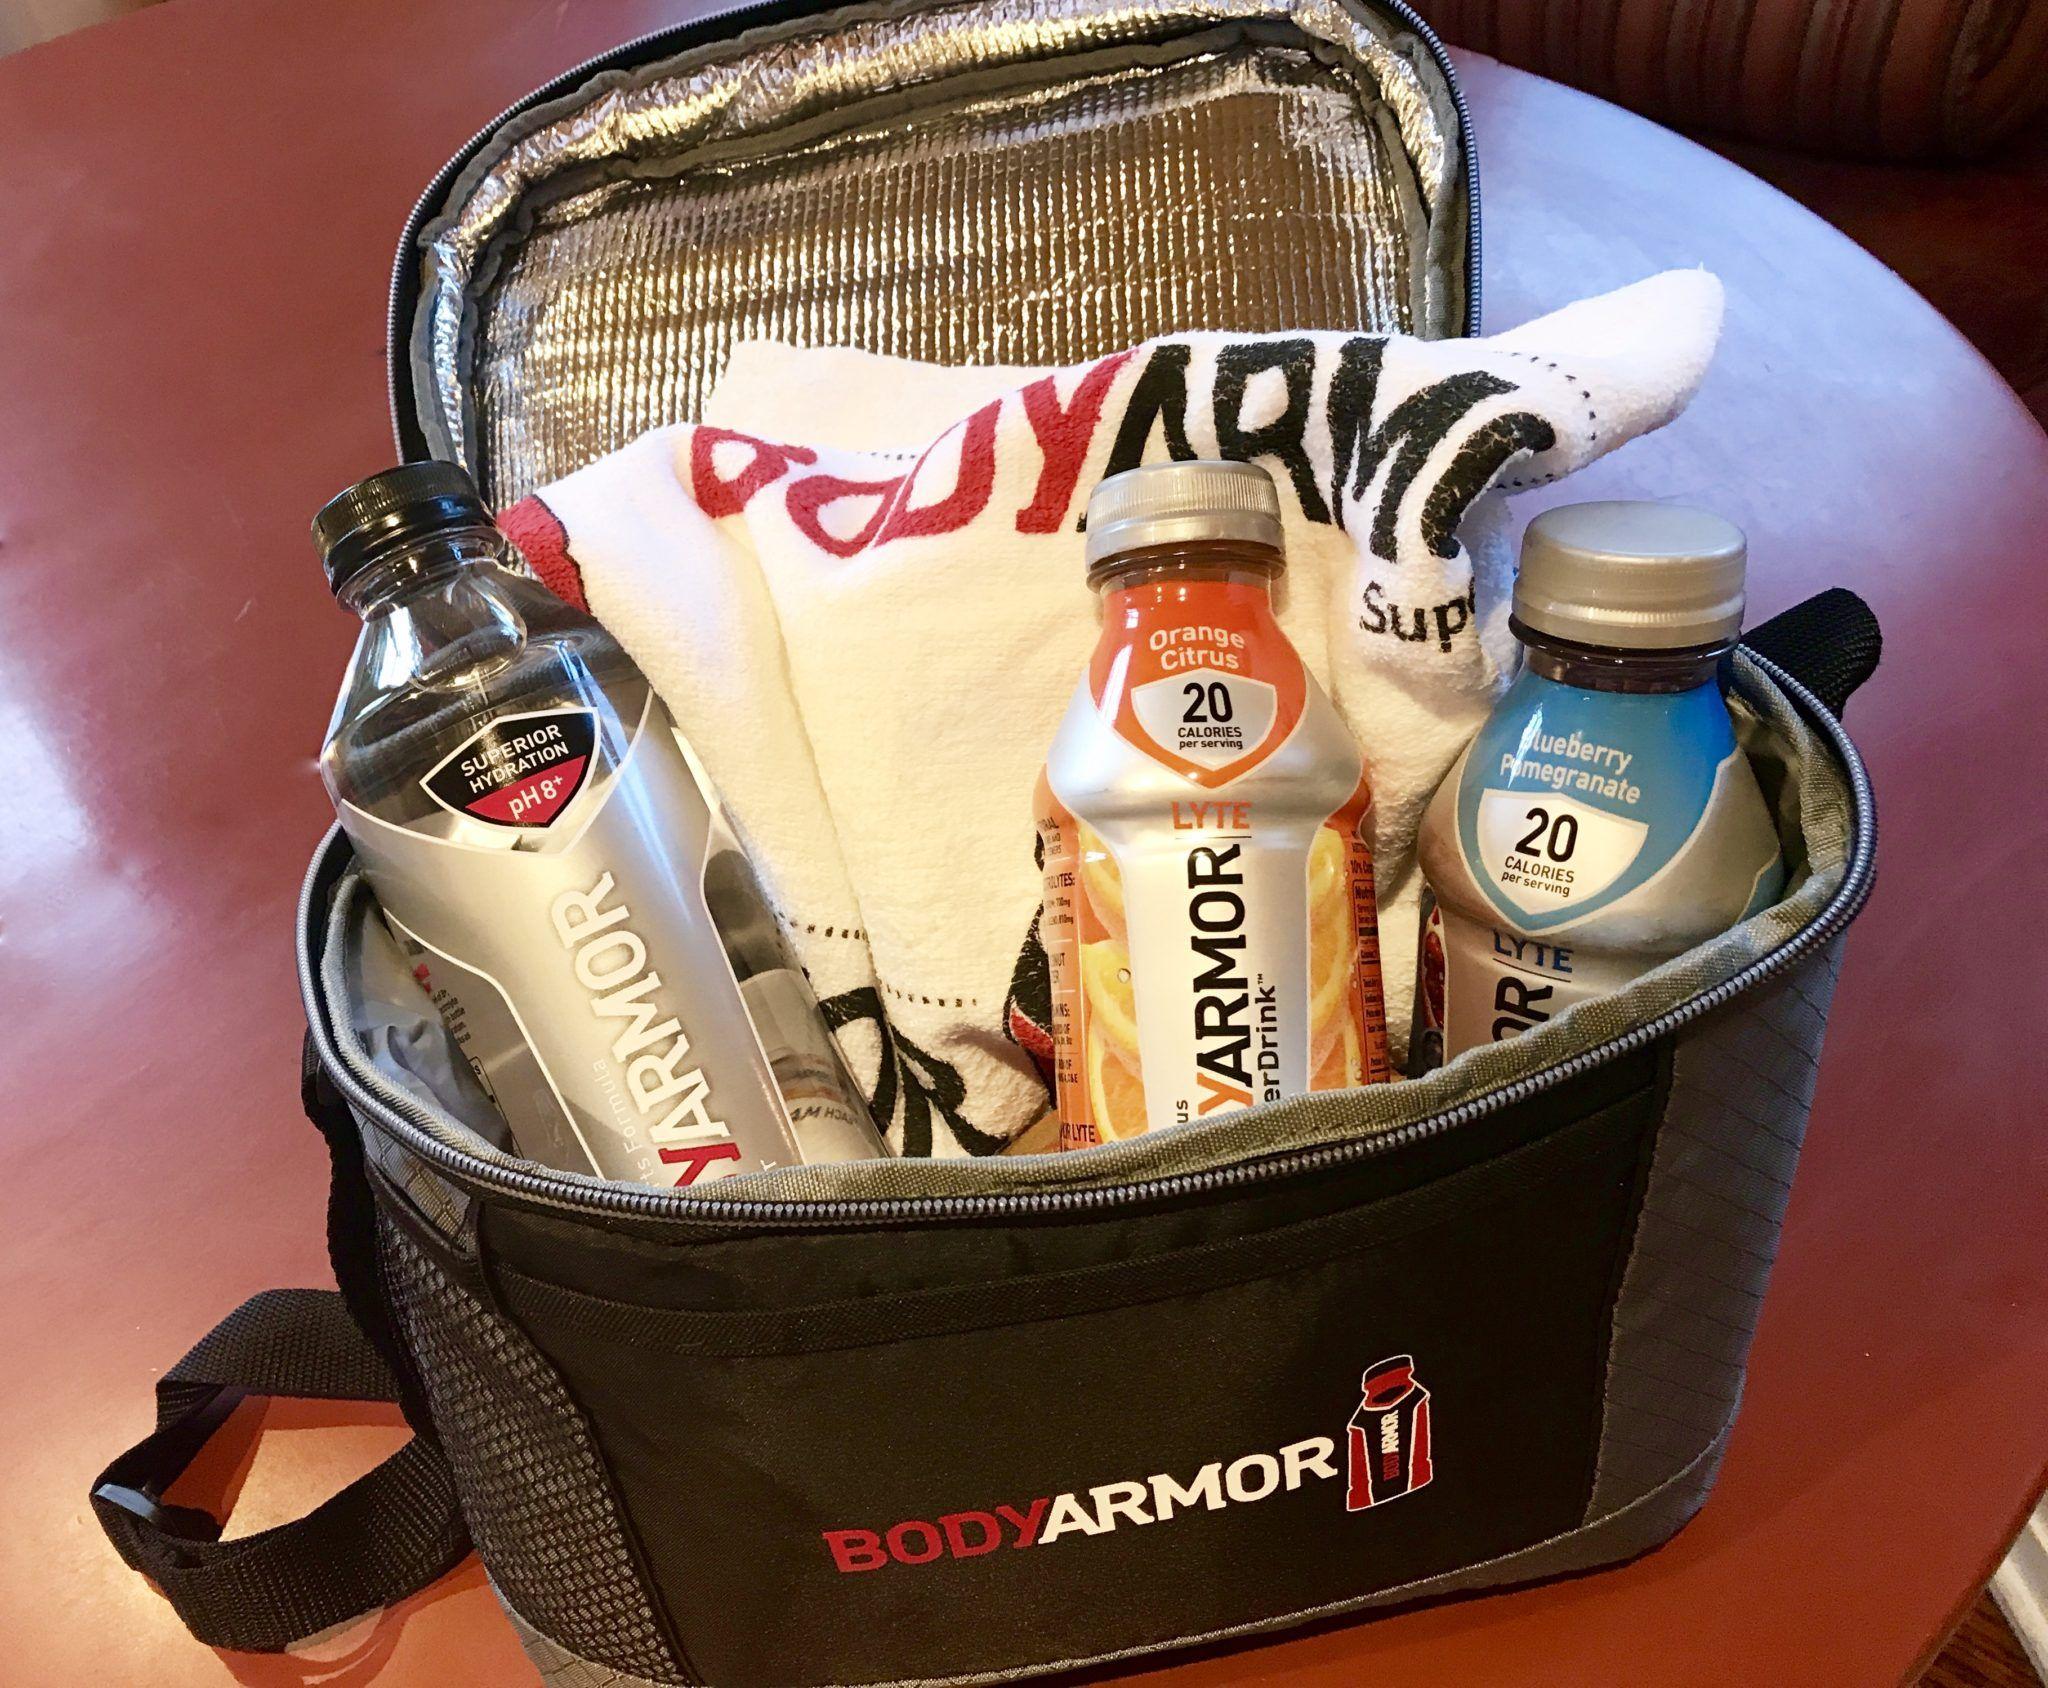 Gearing up for an active spring with BODYARMOR Sports